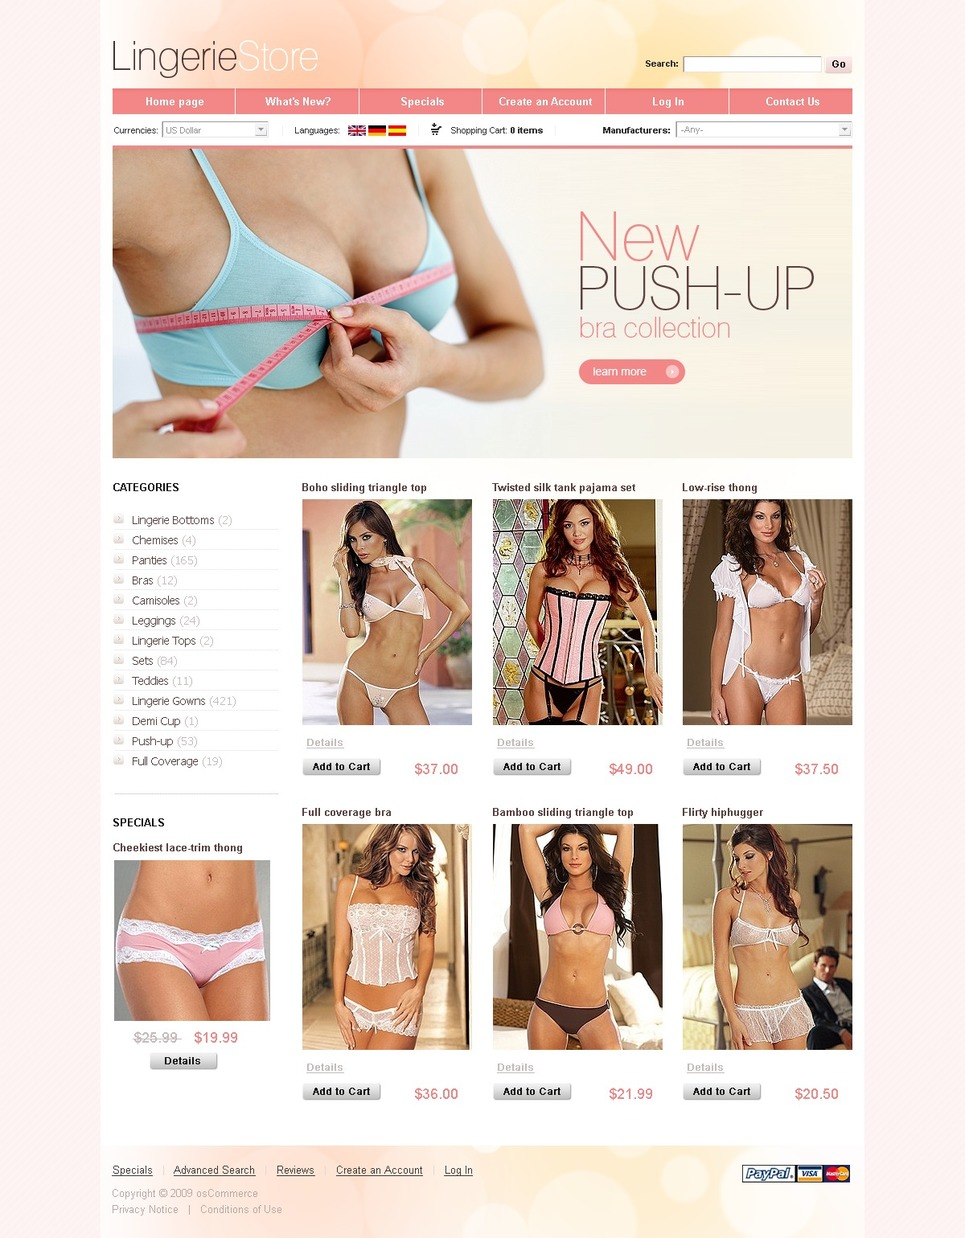 The Simple Lingerie OSCommerce Template